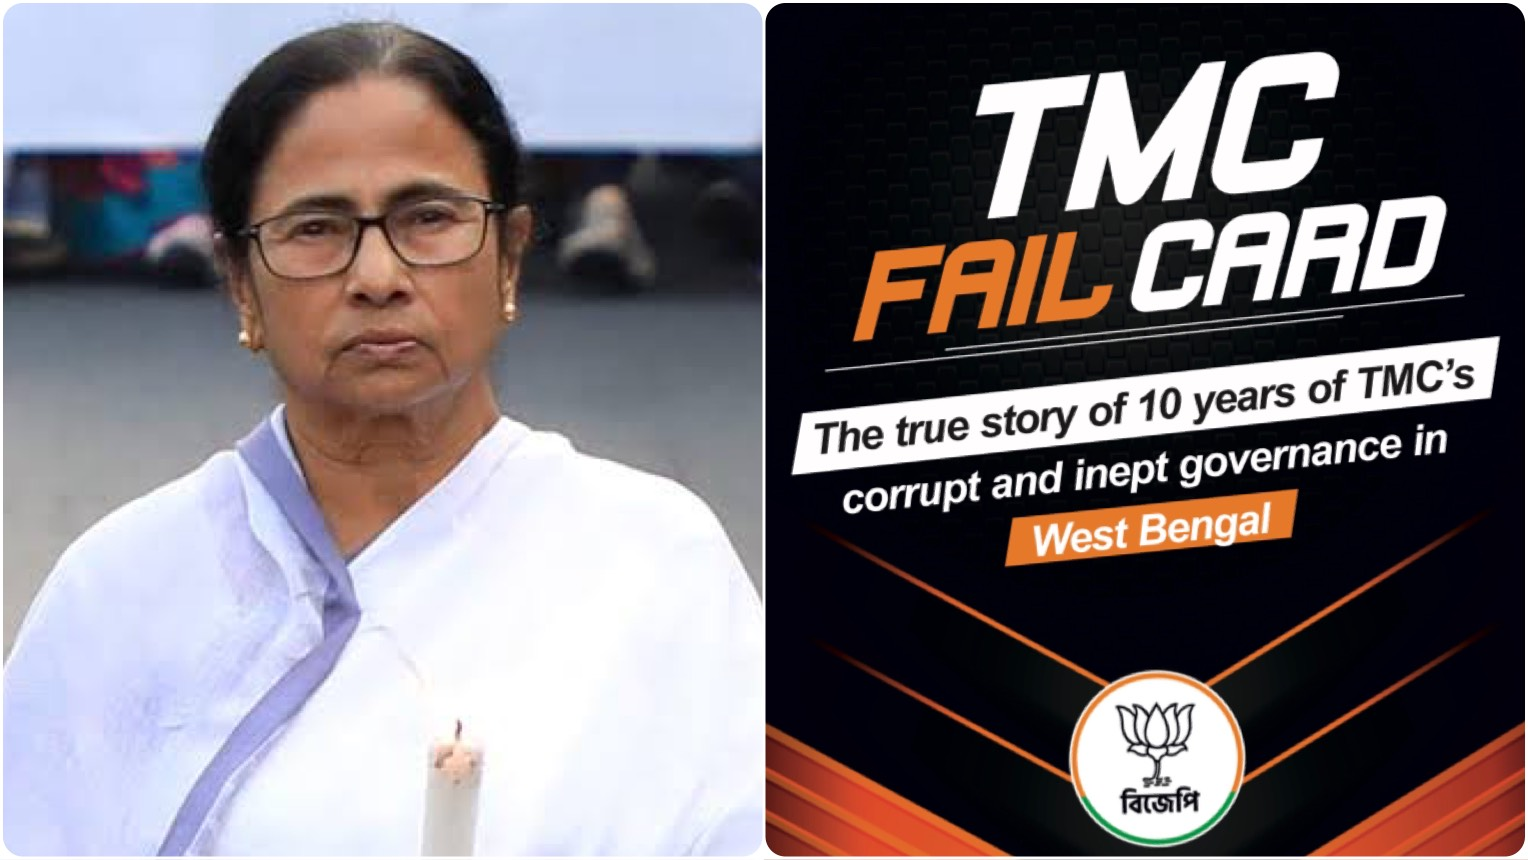 'TMC Fail Card' released to described the misrule of TMC in West Bengal